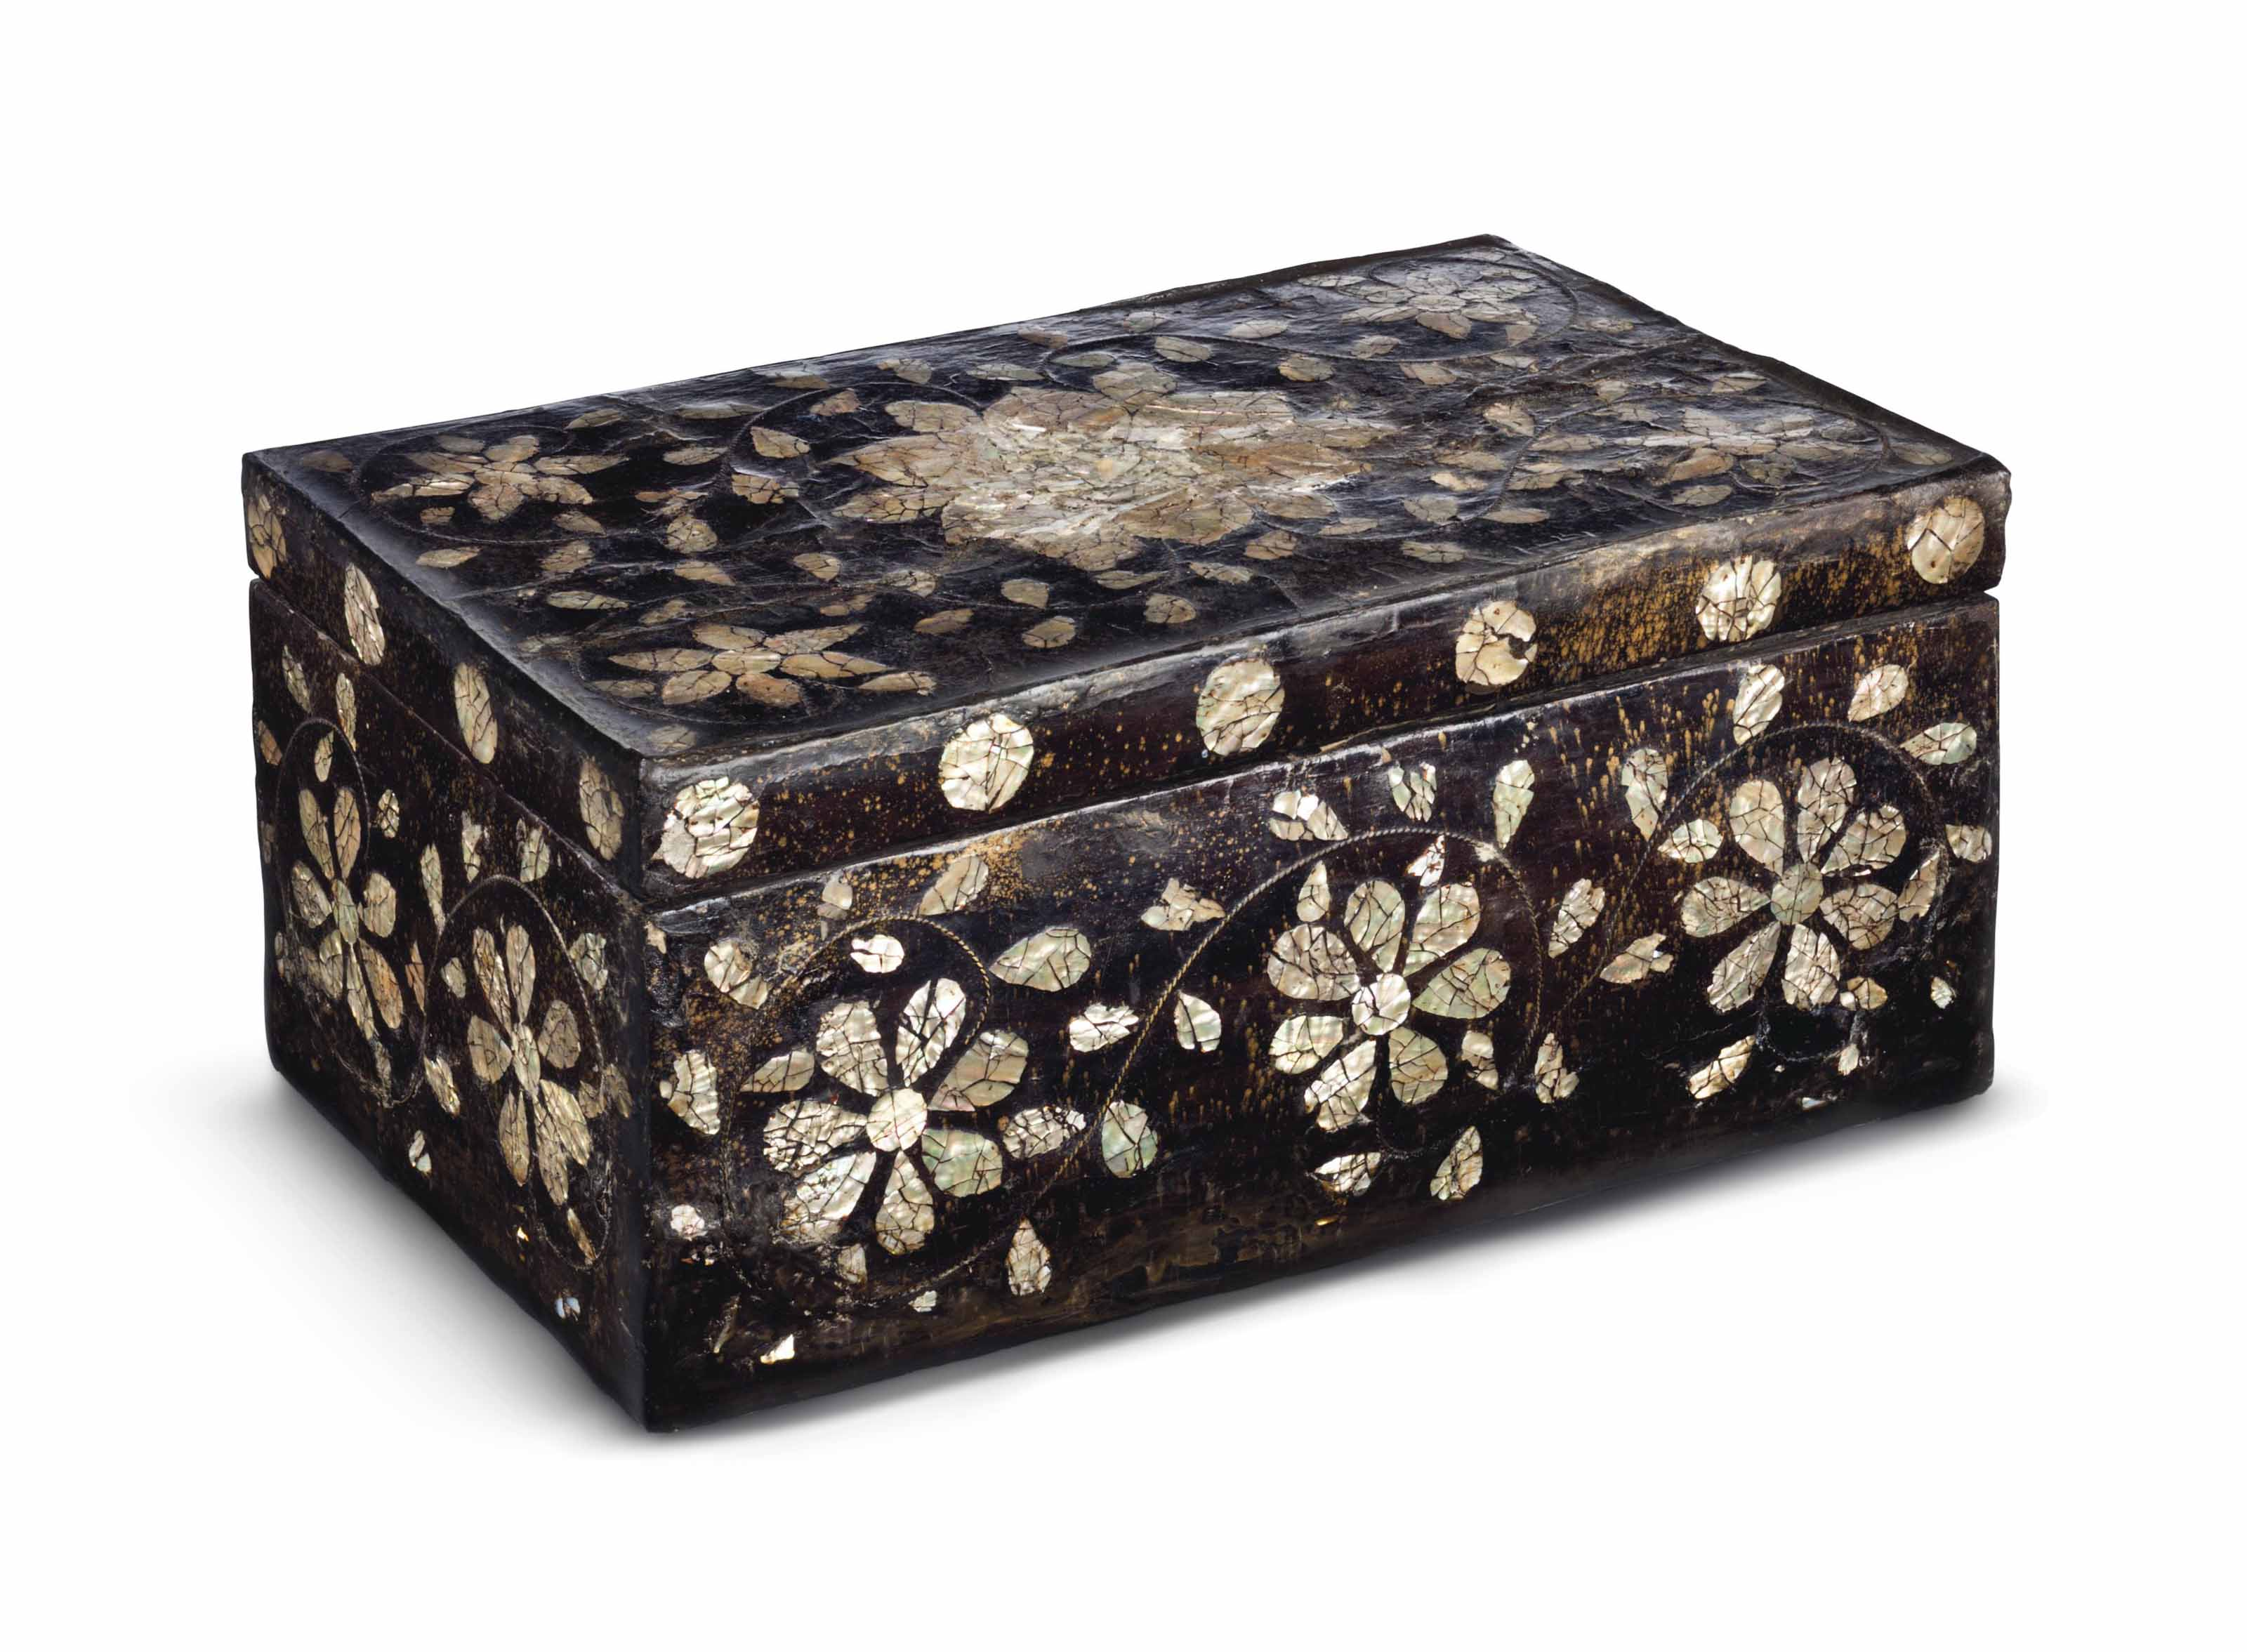 A mother-of-pearl inlaid lacquer box